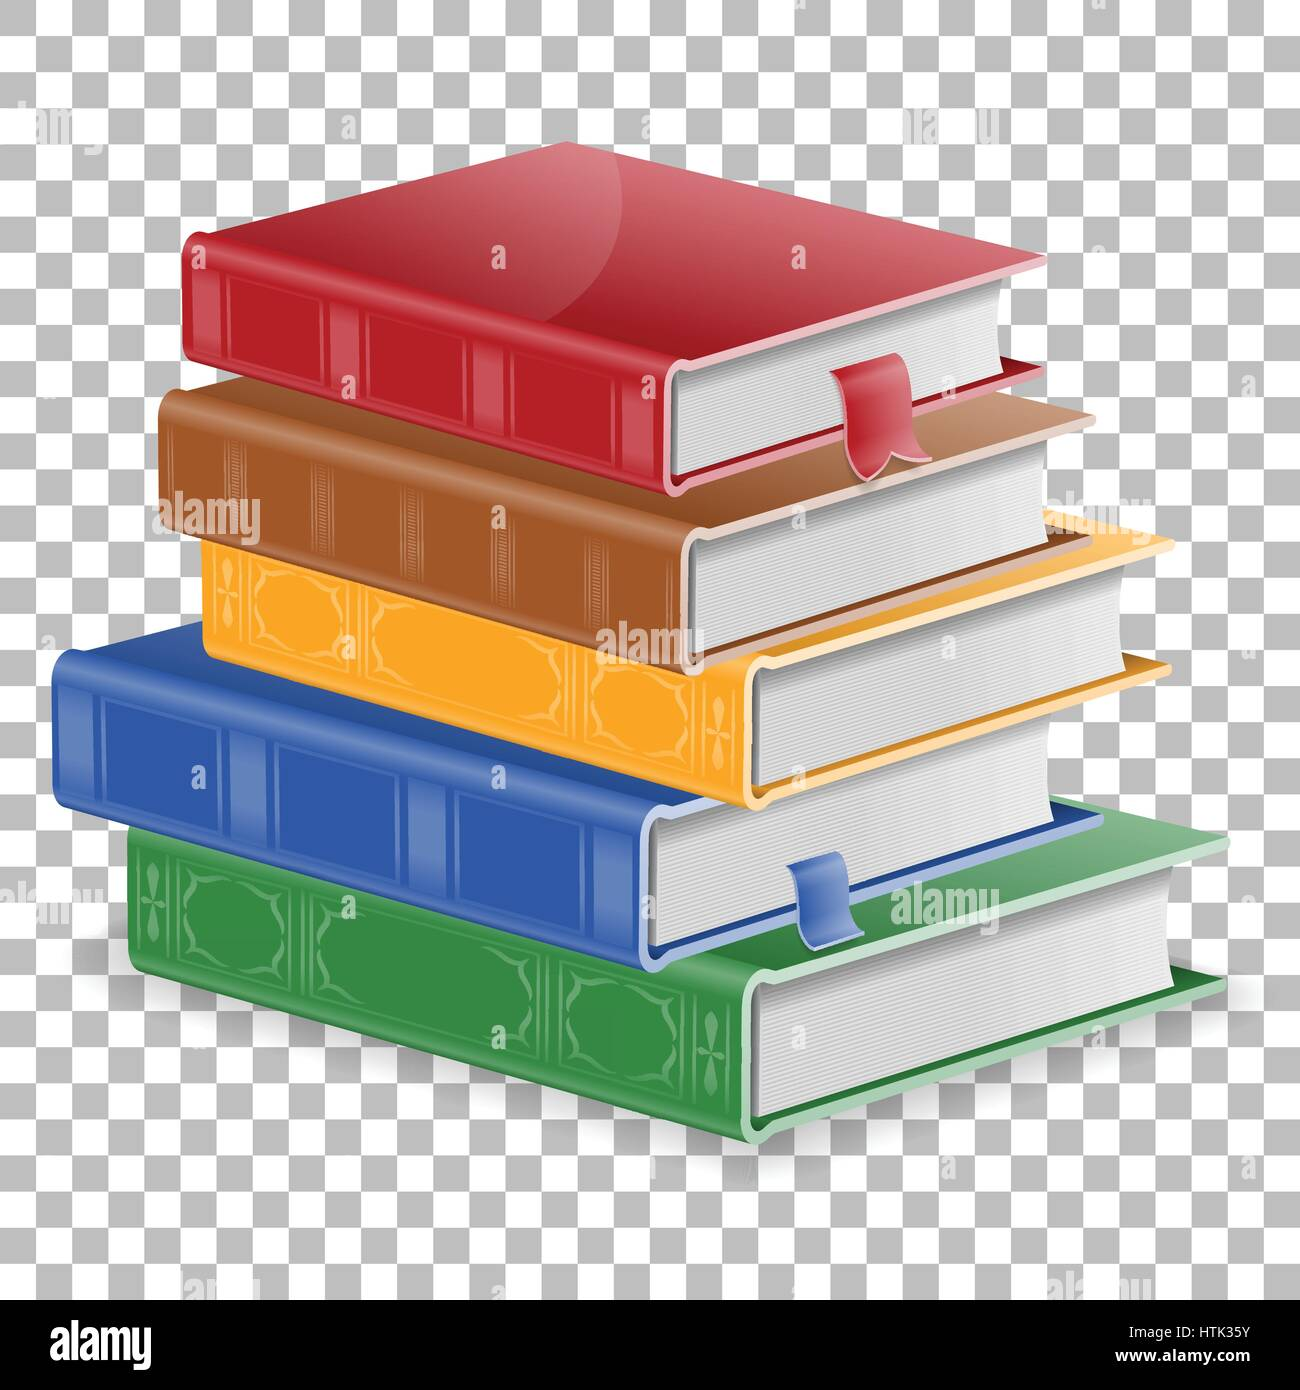 education concept stack of colored books with bookmarks Stack of Books Painting pile of books clipart black and white